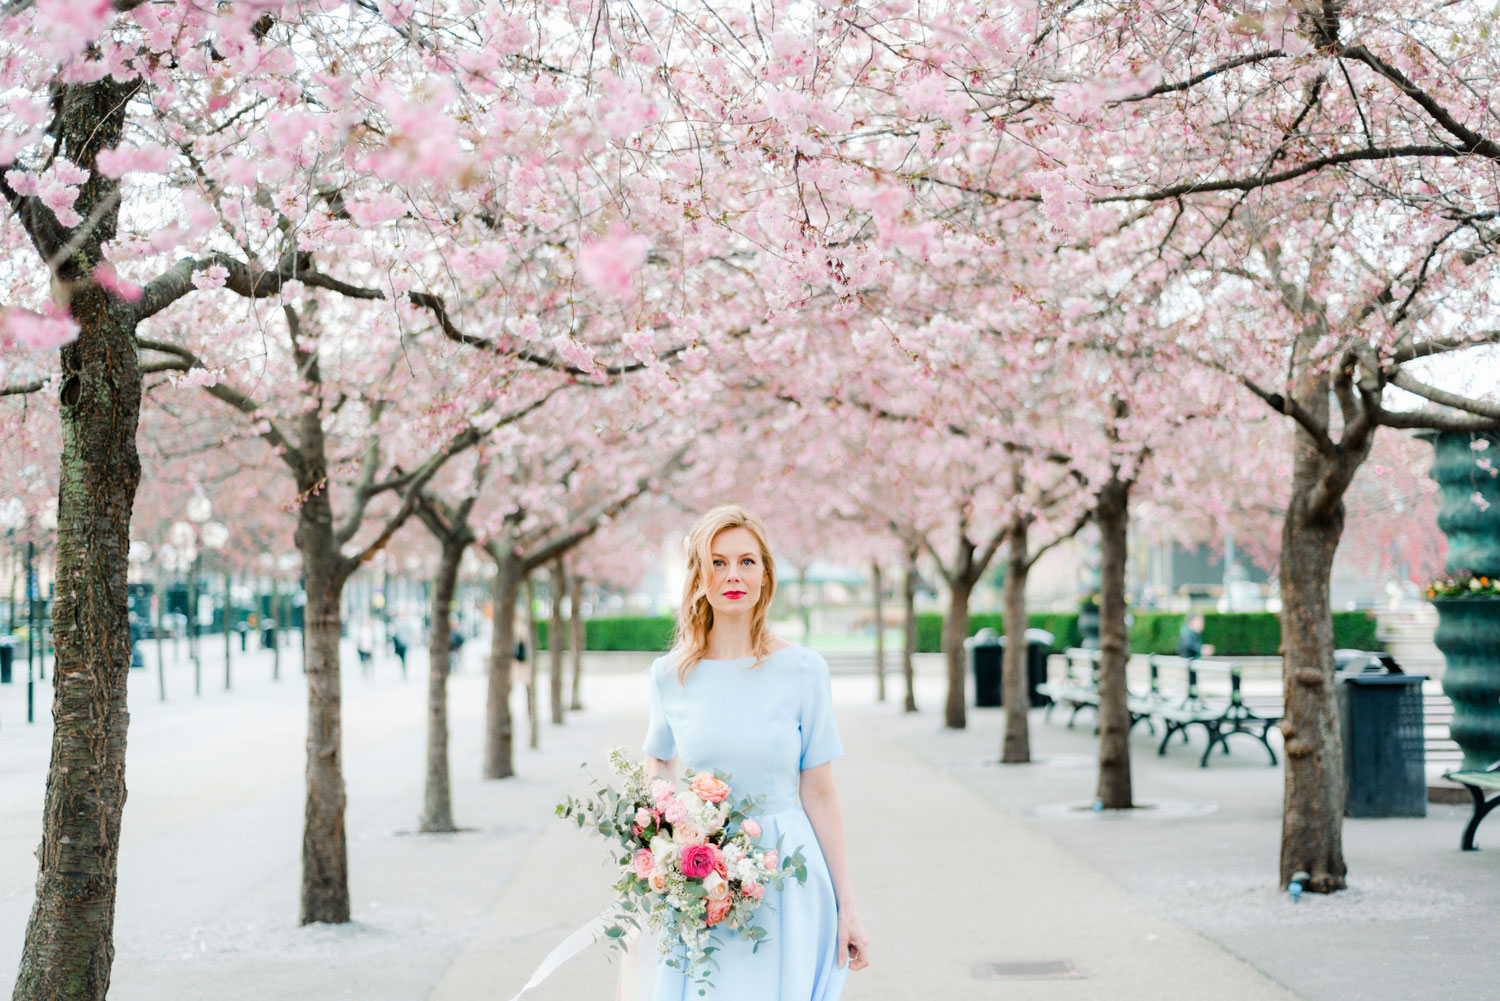 Portrait Photo Session in Cherry Blossom. Bröllopsfotograf Stockholm Umeå. Wedding photographer